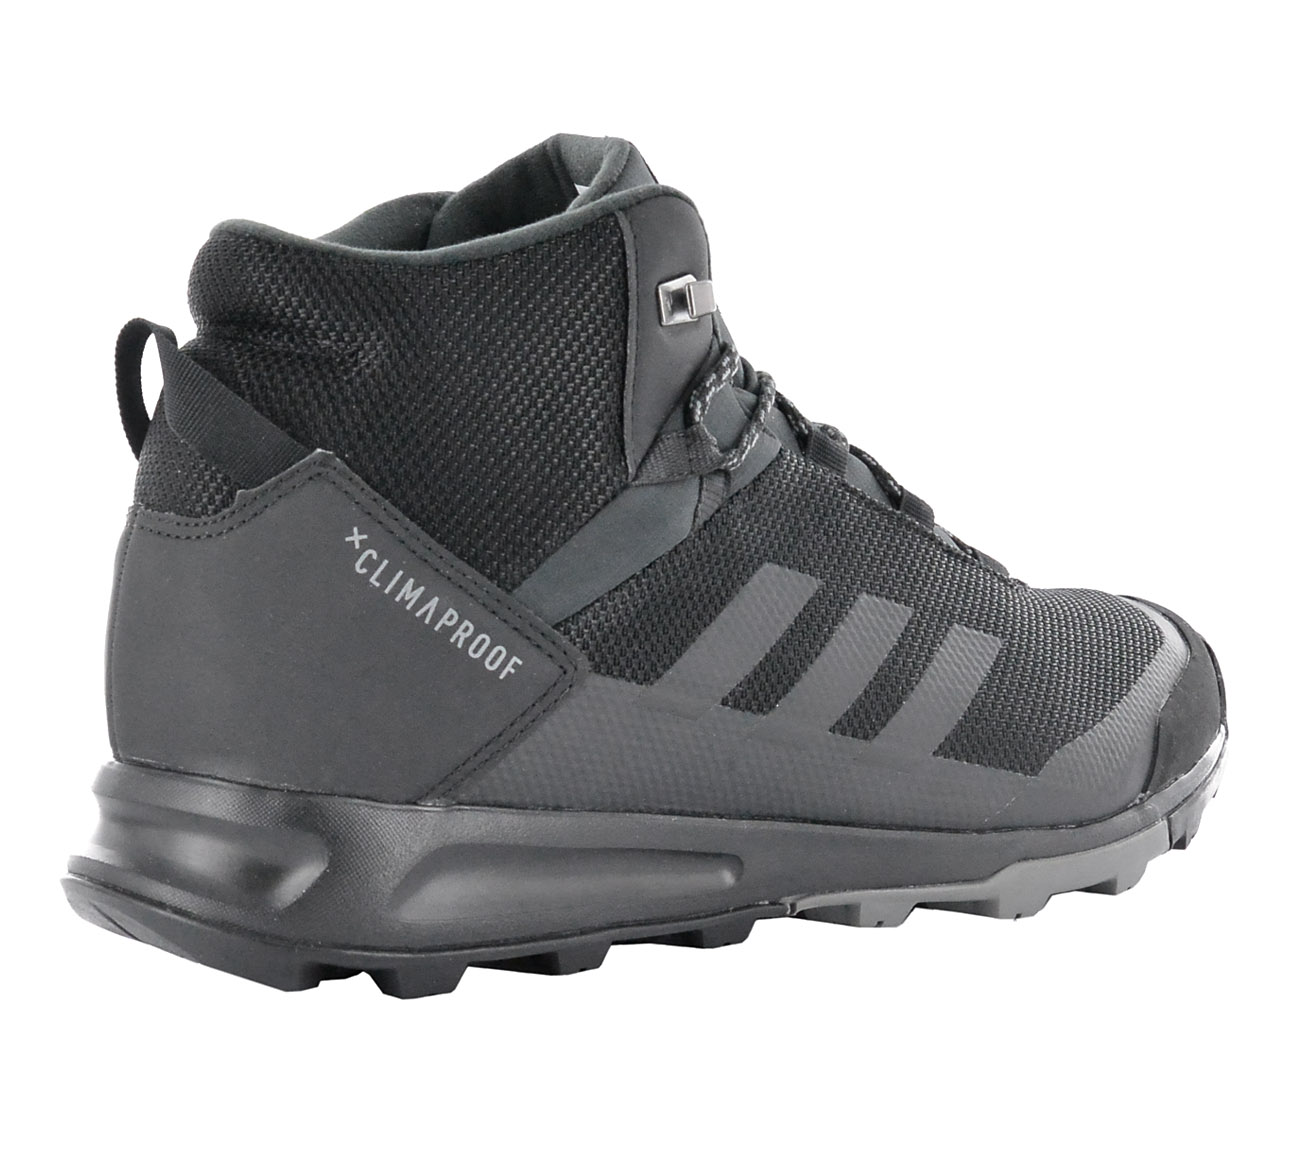 adidas climaproof shoes